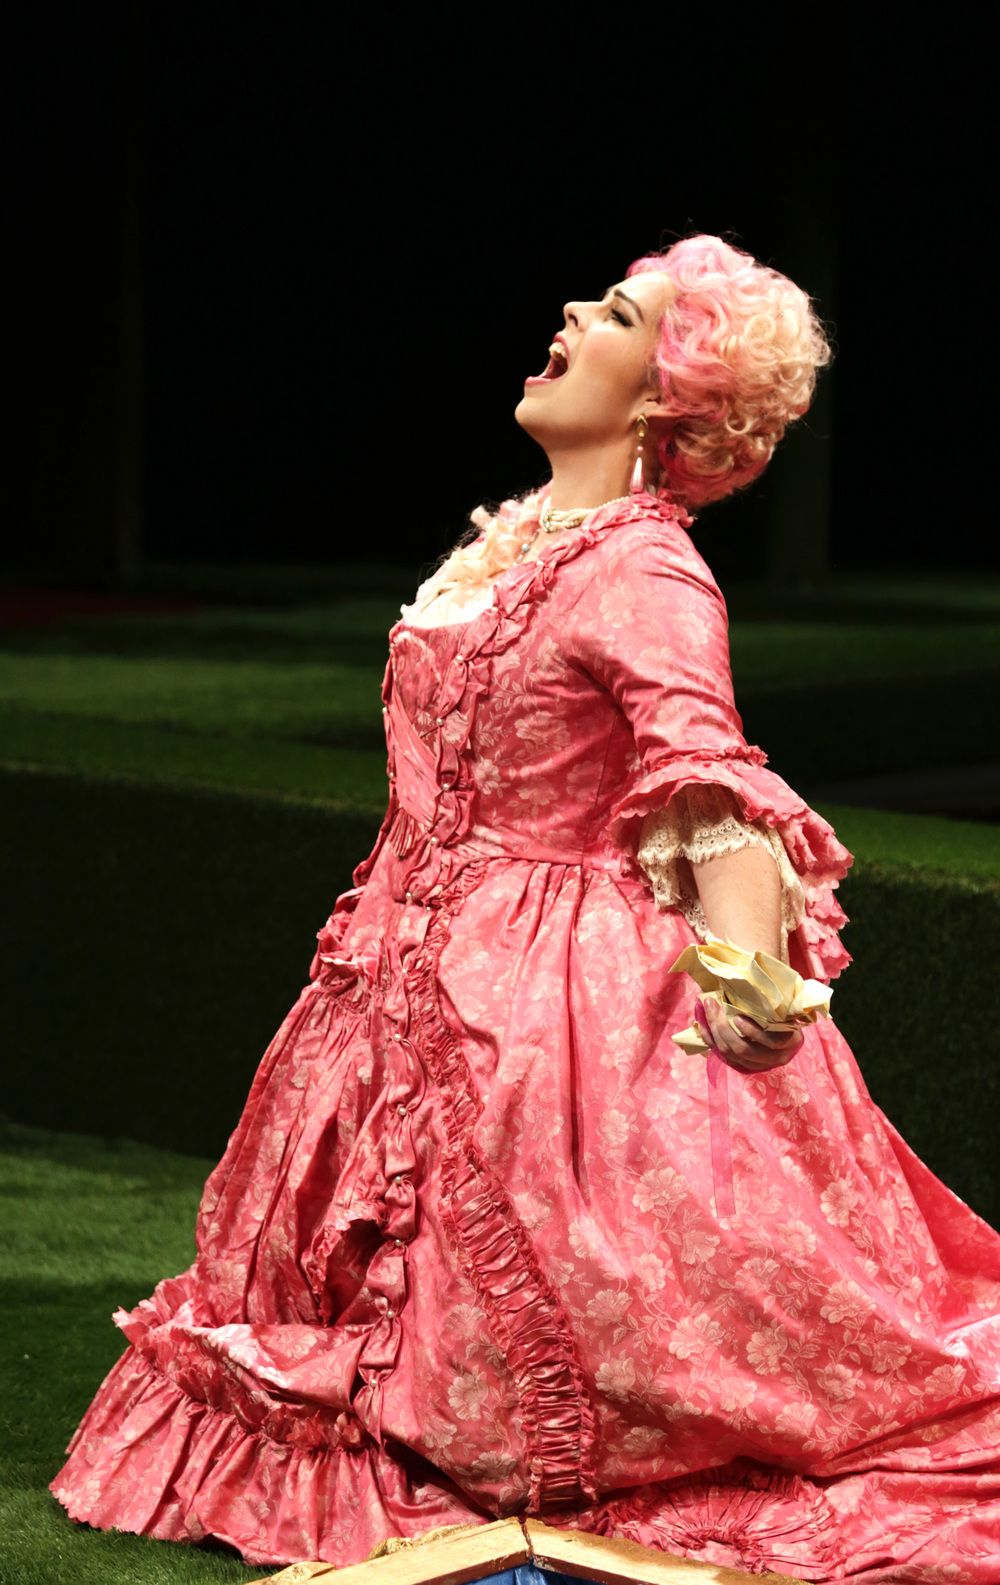 Amanda Woodbury (Konstanze) singing 'Martern aller arten' in Des Moines Metro Opera's 2015 production of Mozart's Die Entführung aus dem Serail. — Photography by Michael Rolands, Record-Herald MICHAEL ROLANDS/RECORD-HERALD)